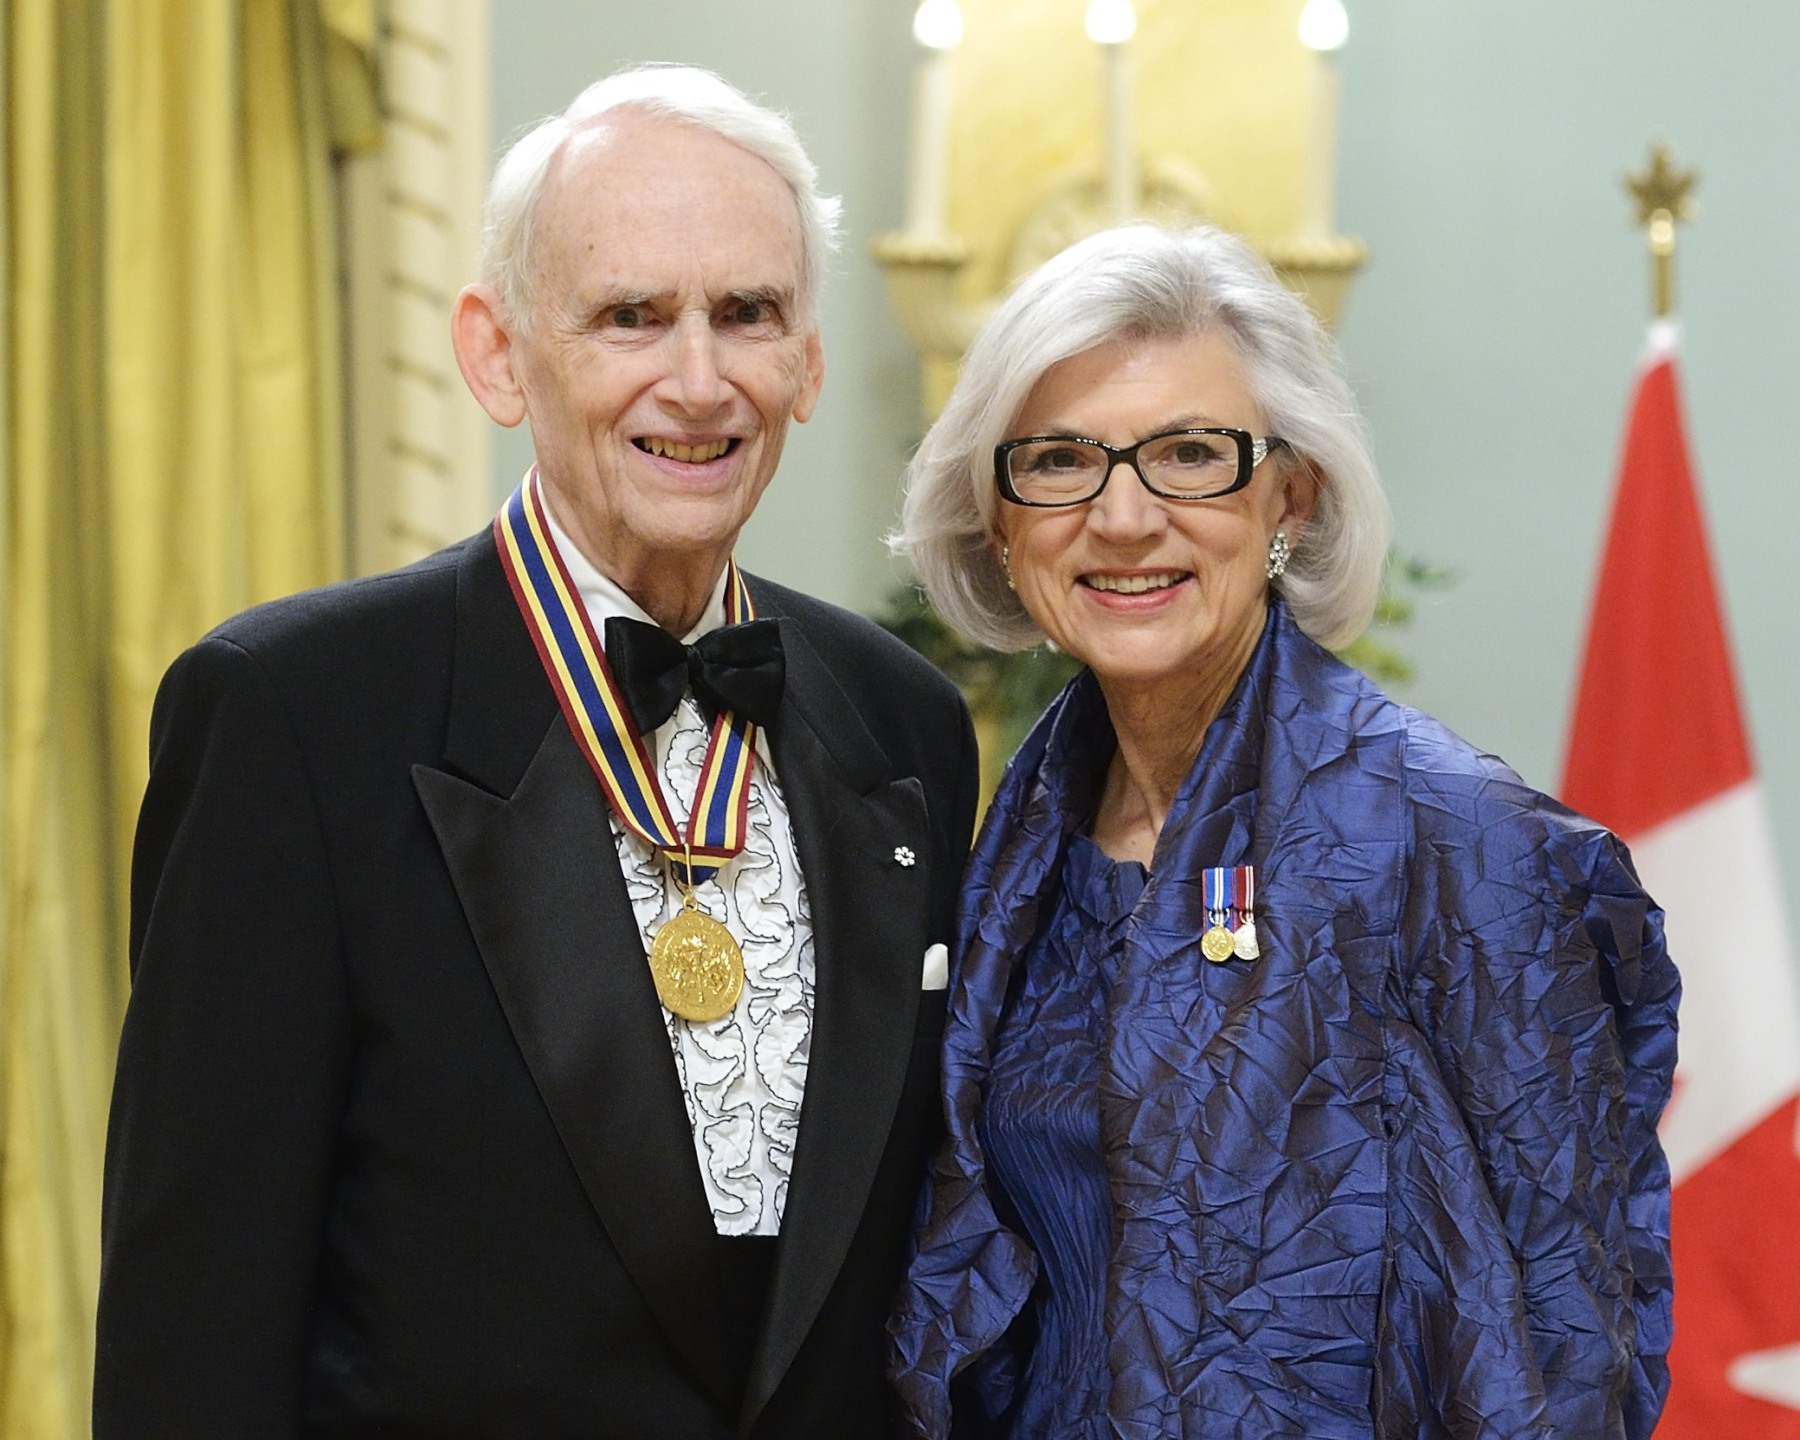 The Ramon John Hnatyshyn Award for Voluntarism in the Performing Arts Laureate recognizes outstanding contributions by an individual or group in voluntary service to the performing arts in Canada. Recipients of this award are also nominated by the general public. This year's laureate is John D McKellar.